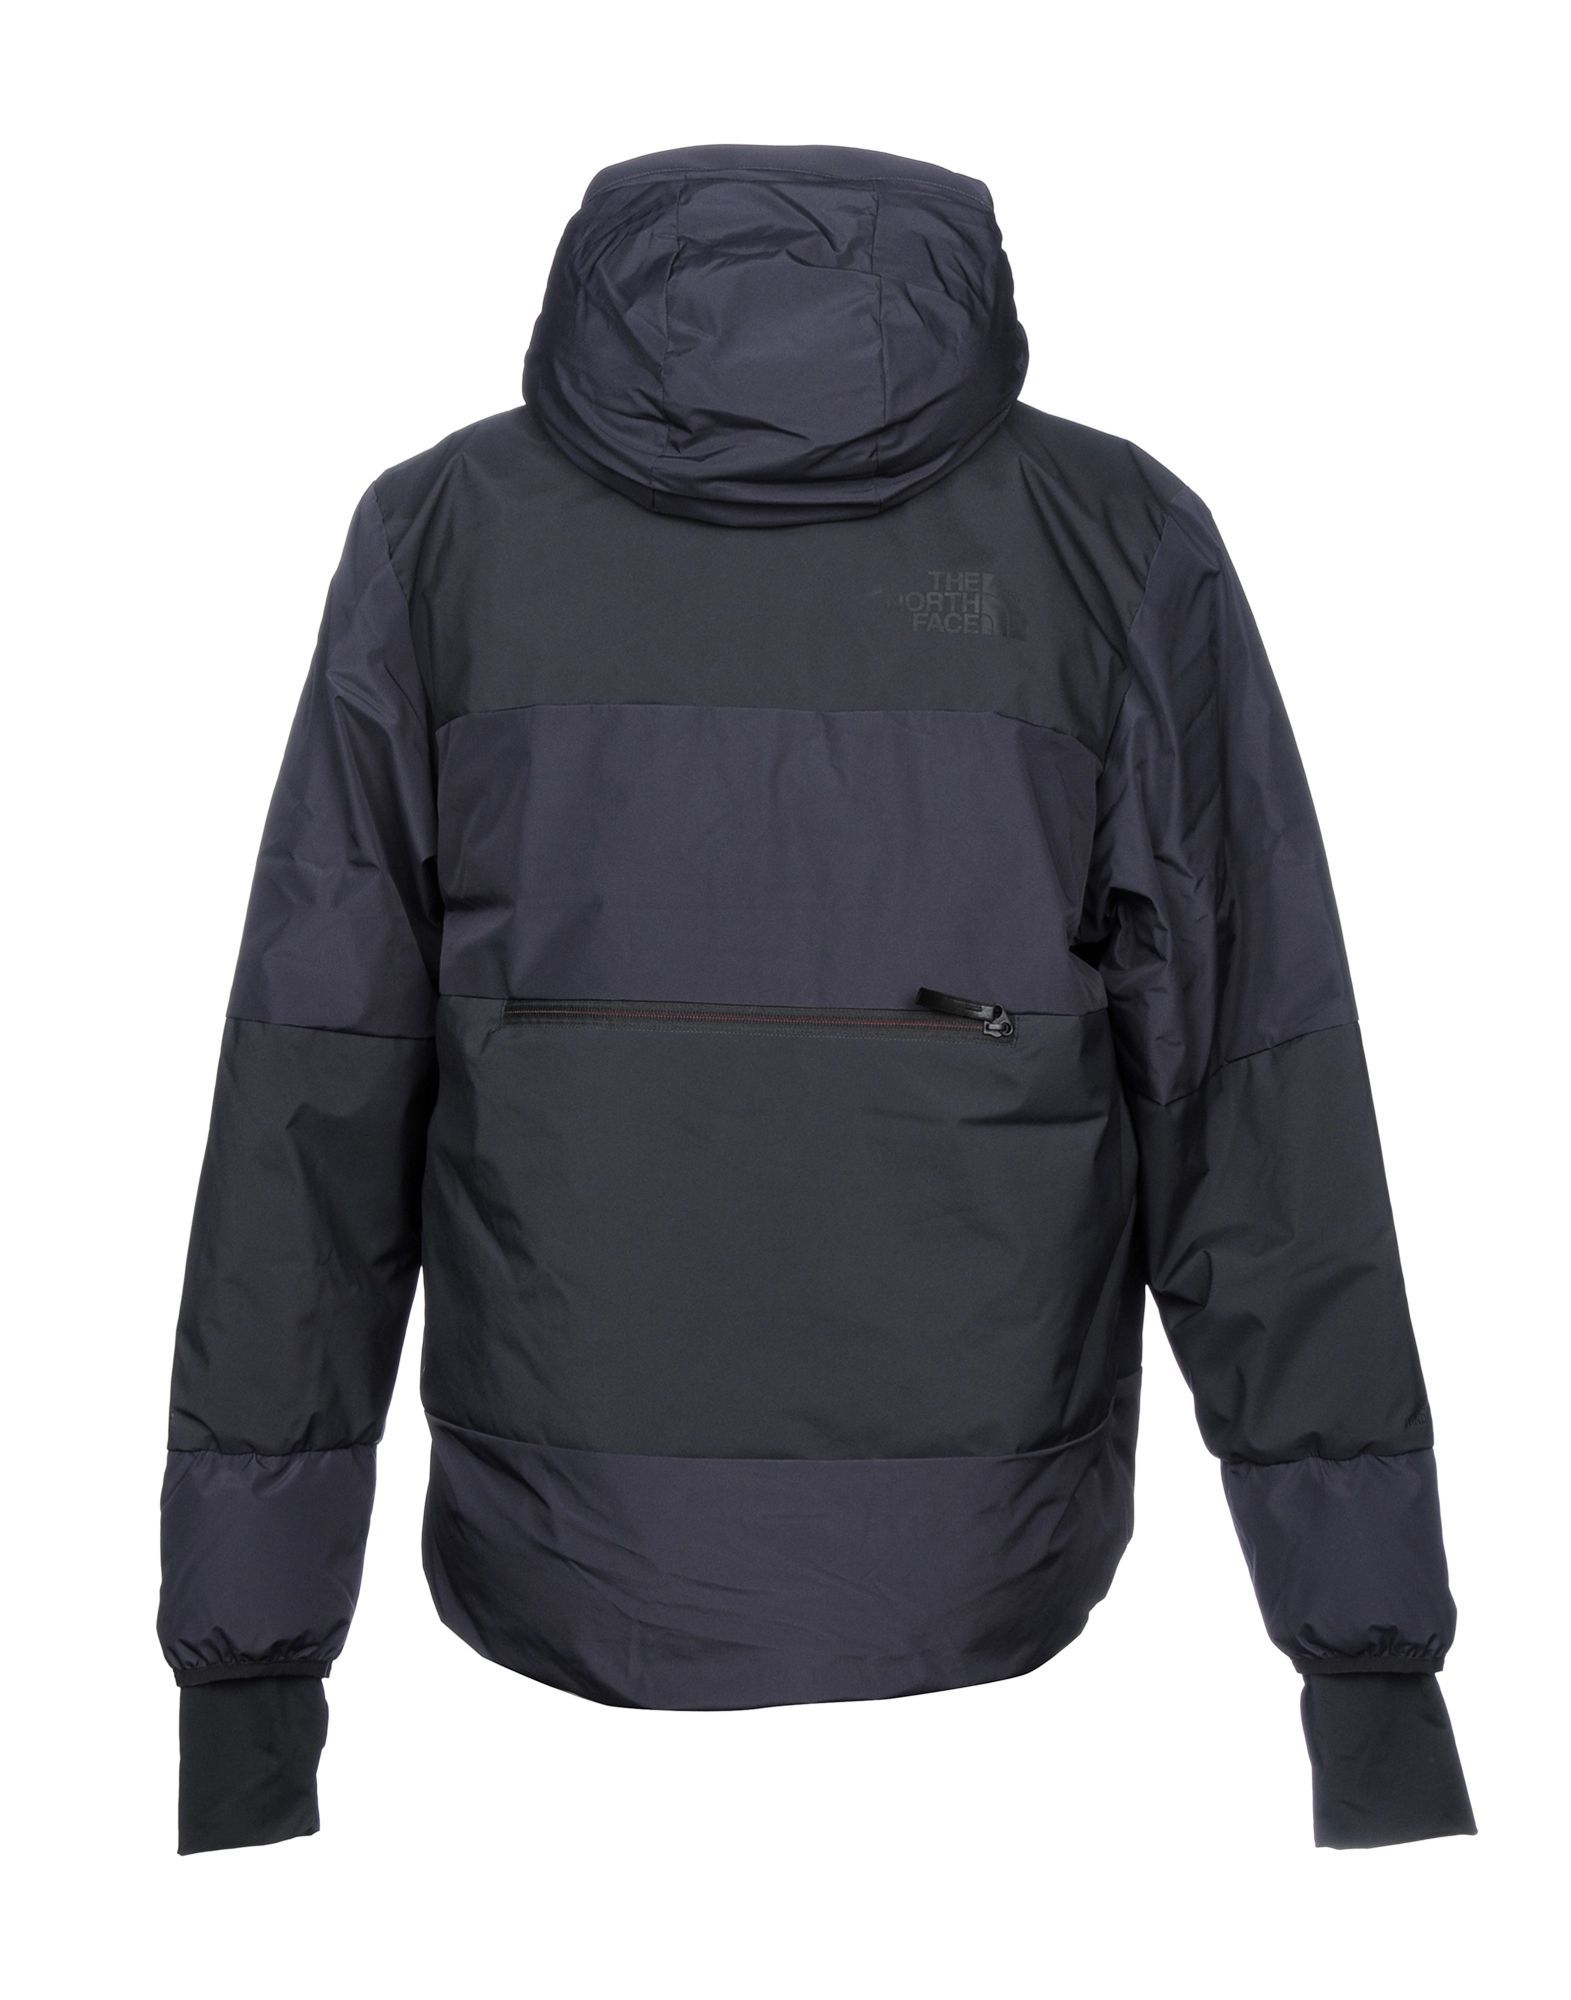 The North Face Dark Blue Techno Fabric Jacket